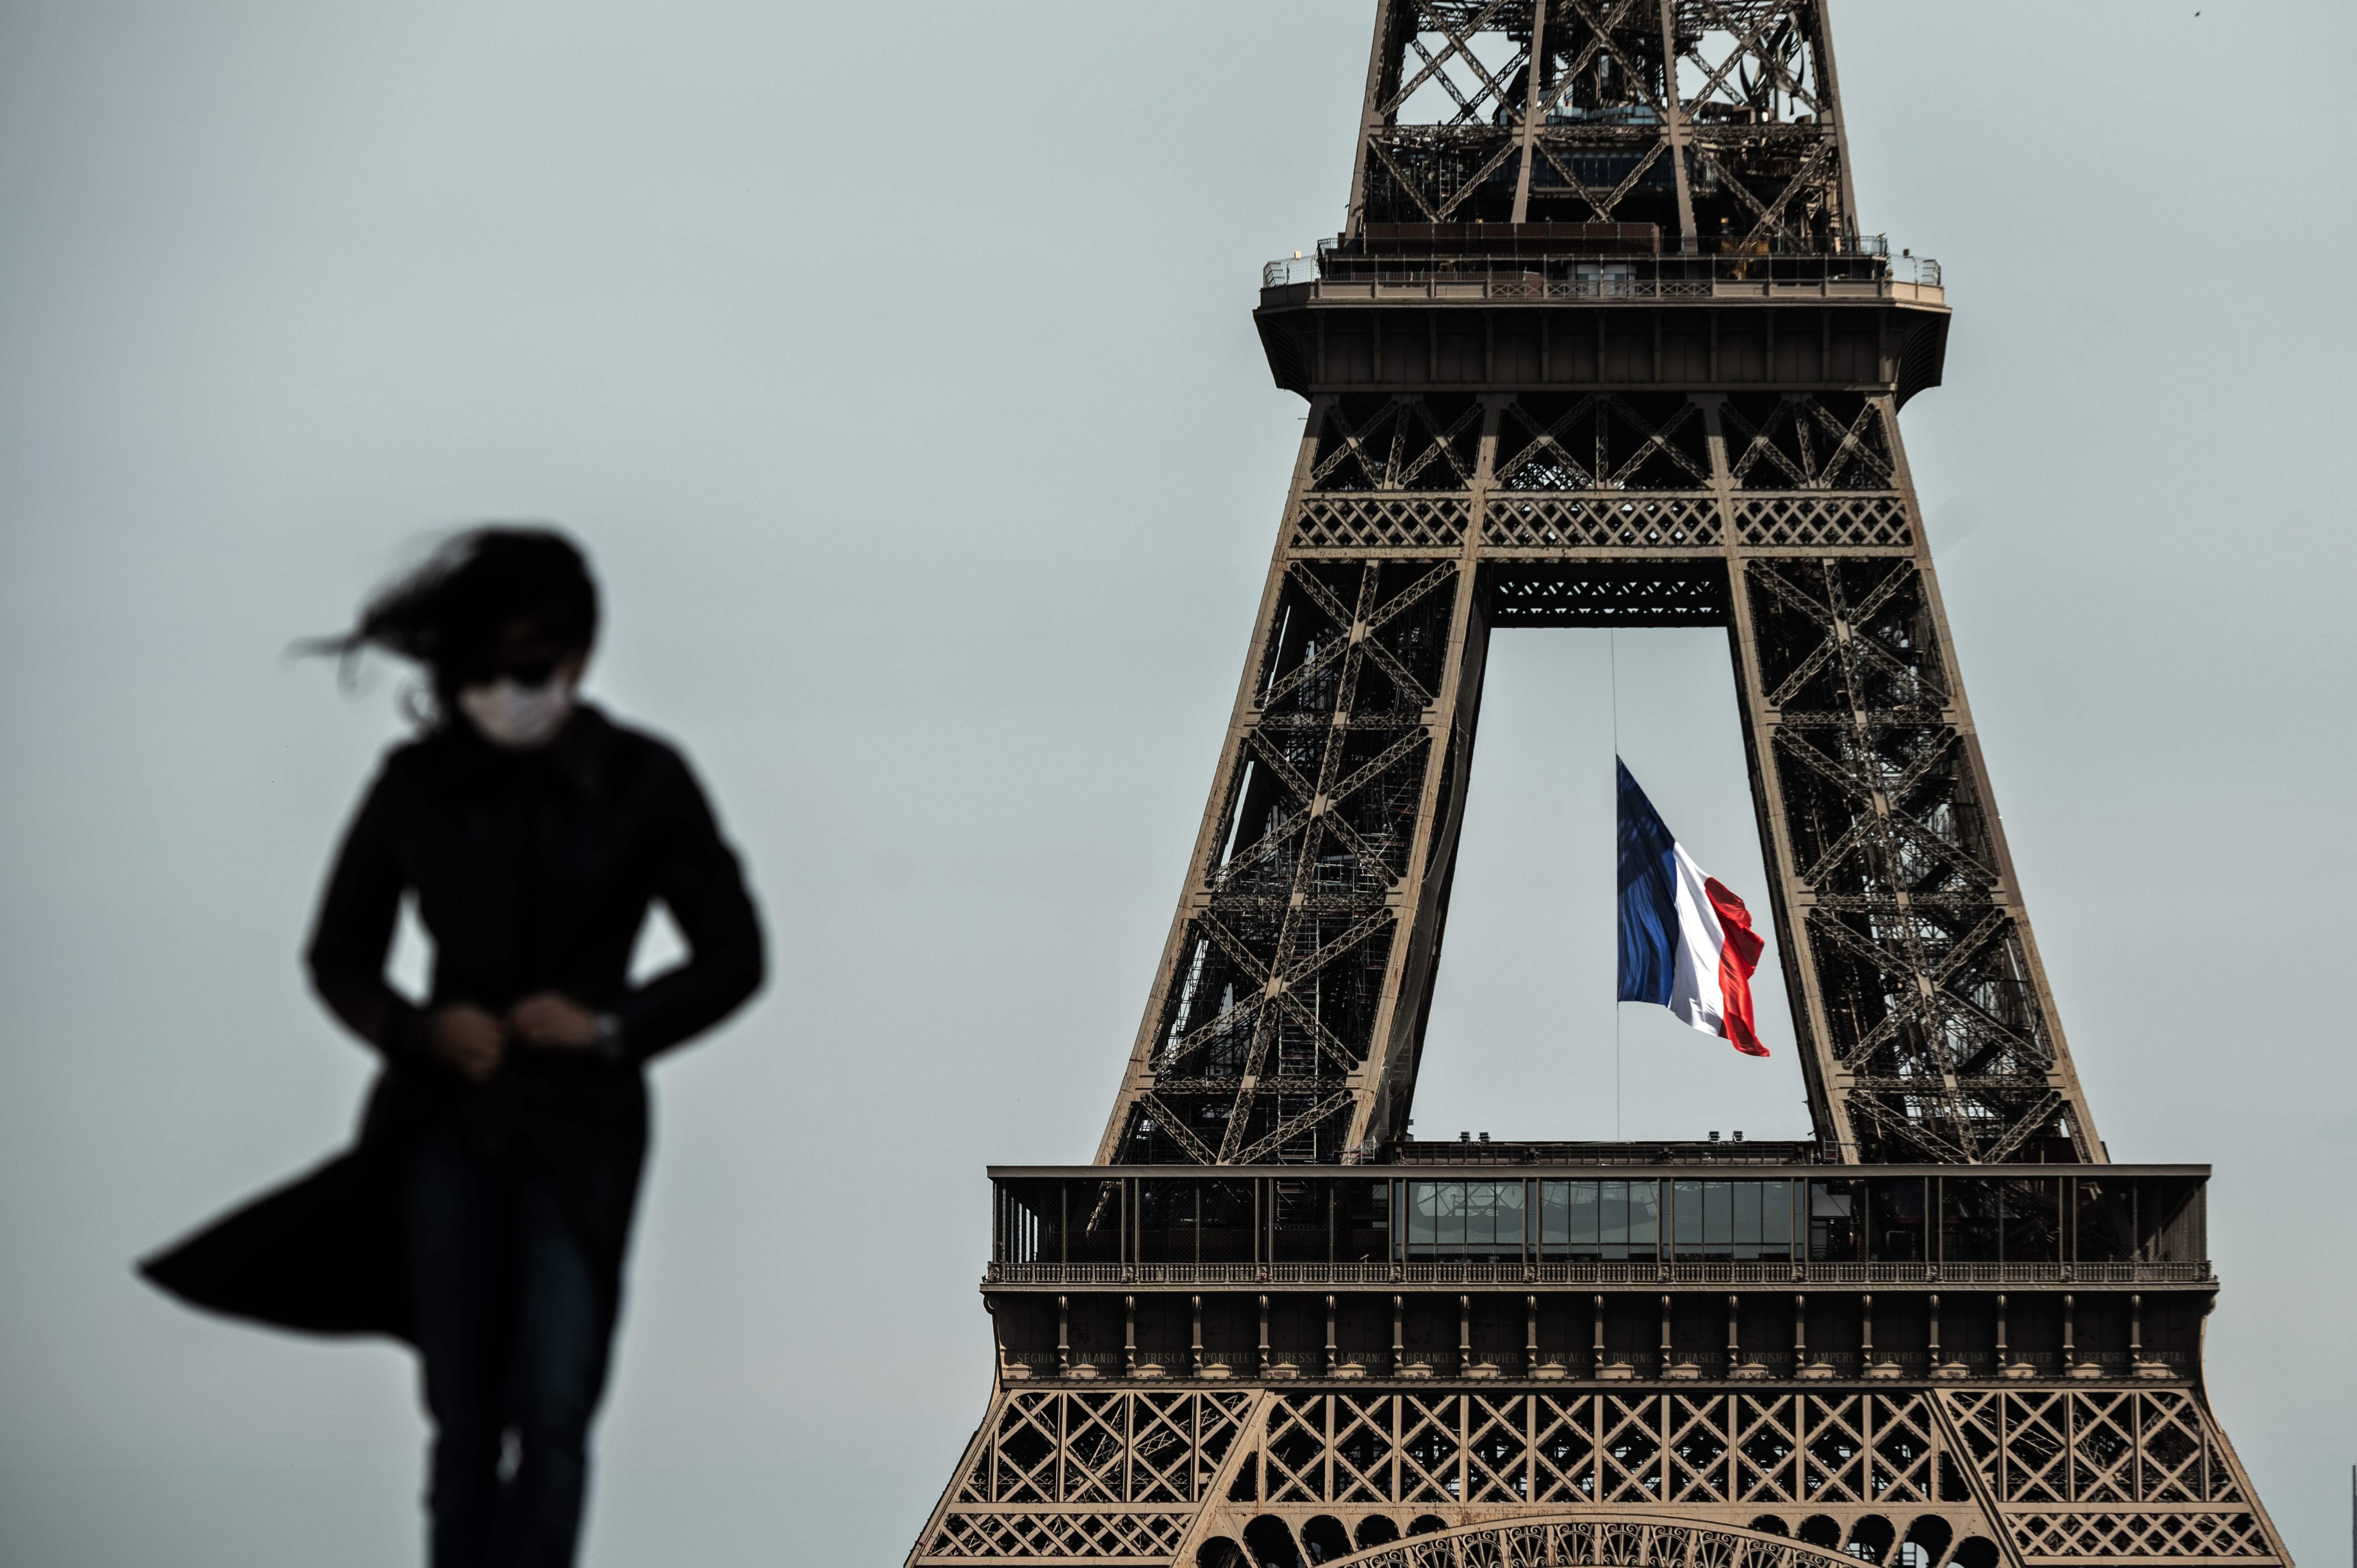 Paris  Eiffel Tower will reopen June 25 and require guests to wear masks